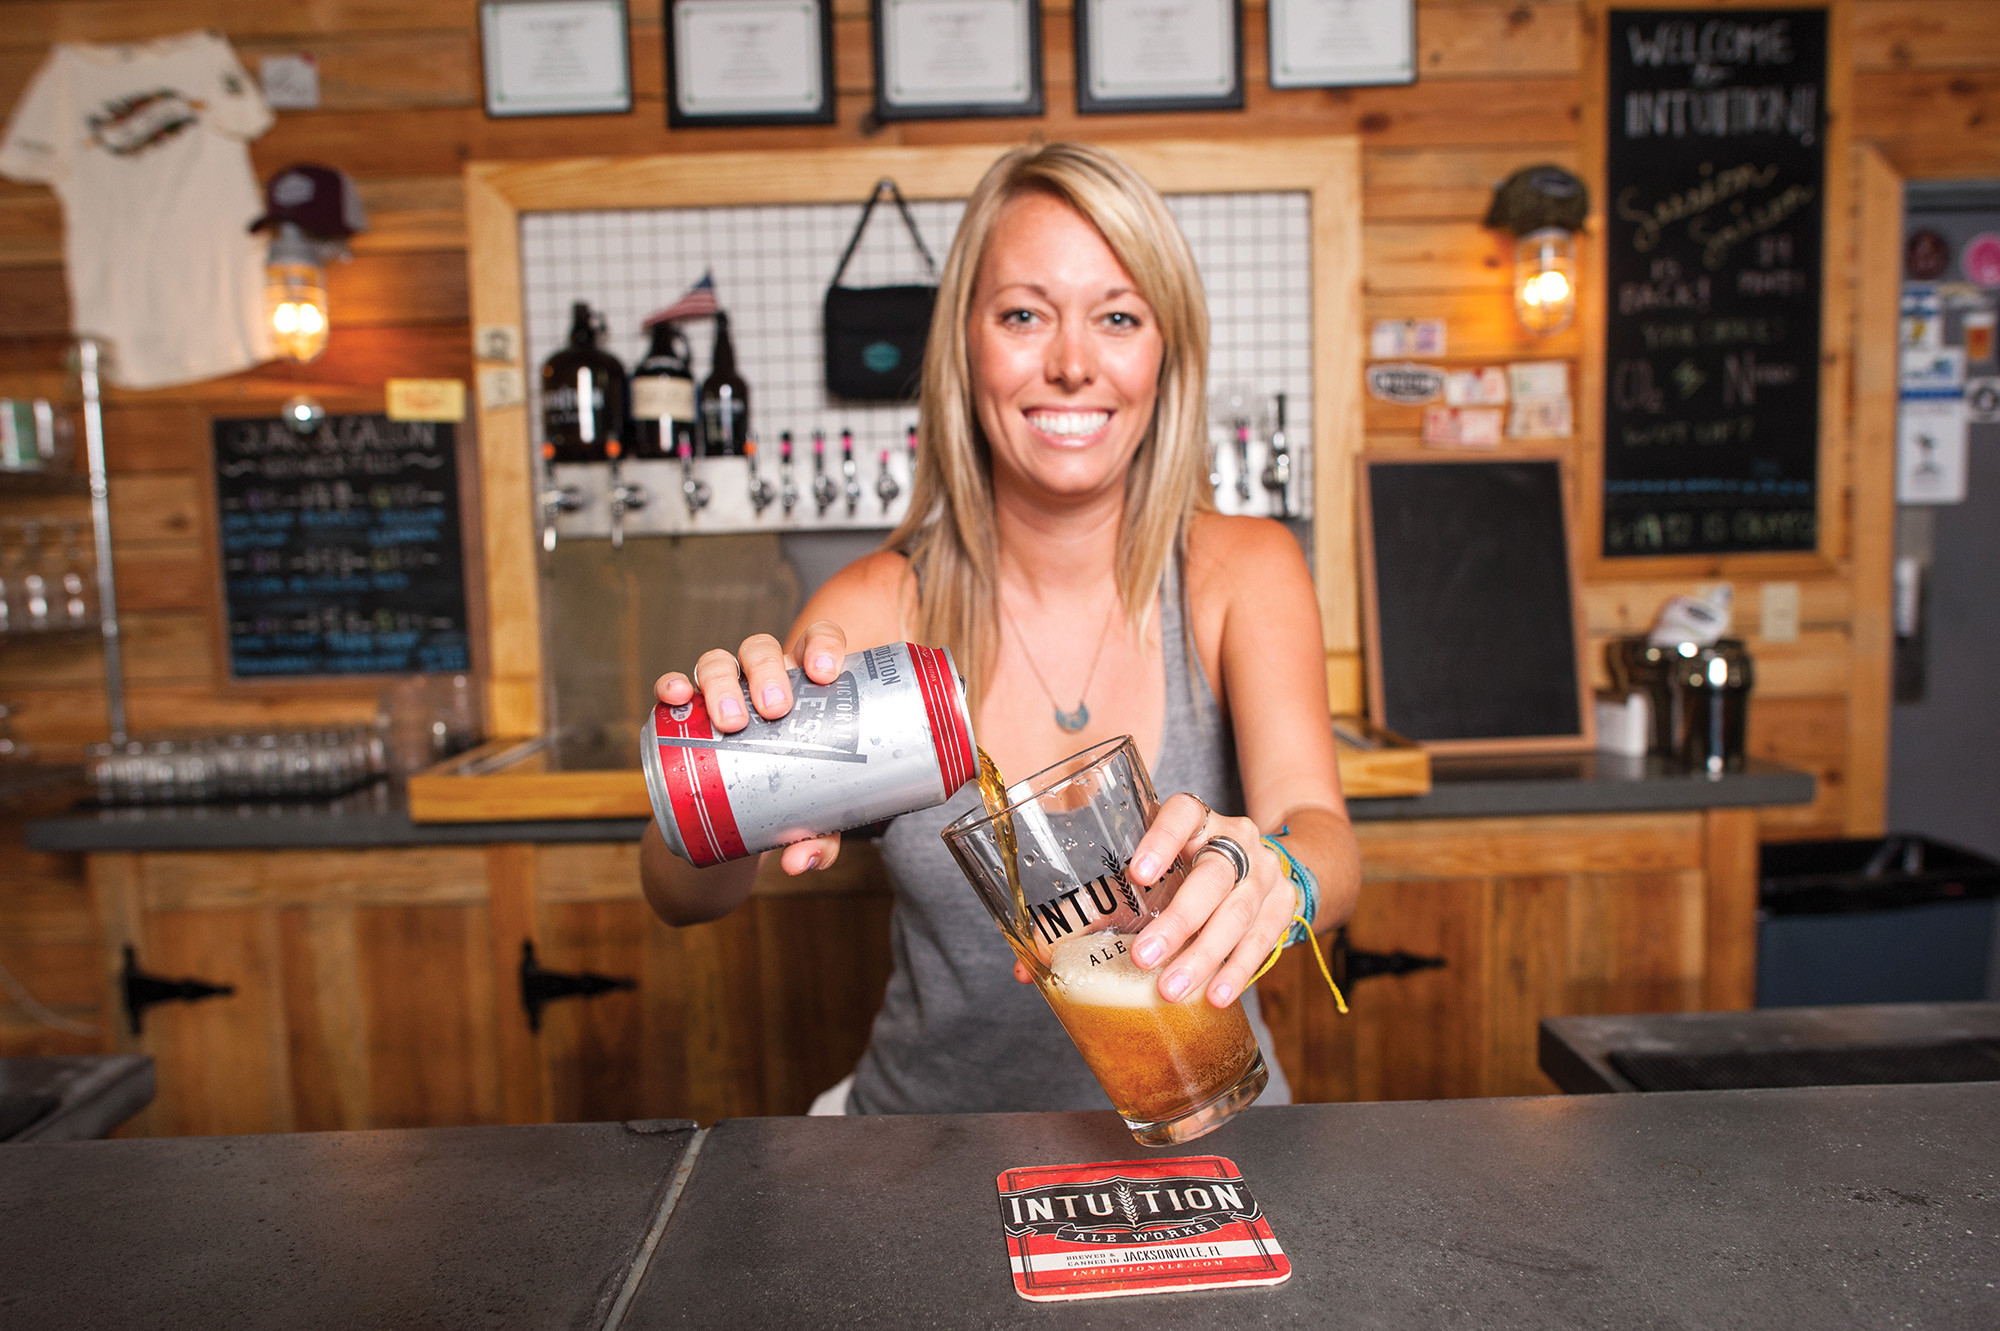 Though you can buy cans of People's Pale Ale at your corner market, Hannah Greer will pour you a selection from one of 20 taps at Intuition Ale Works.